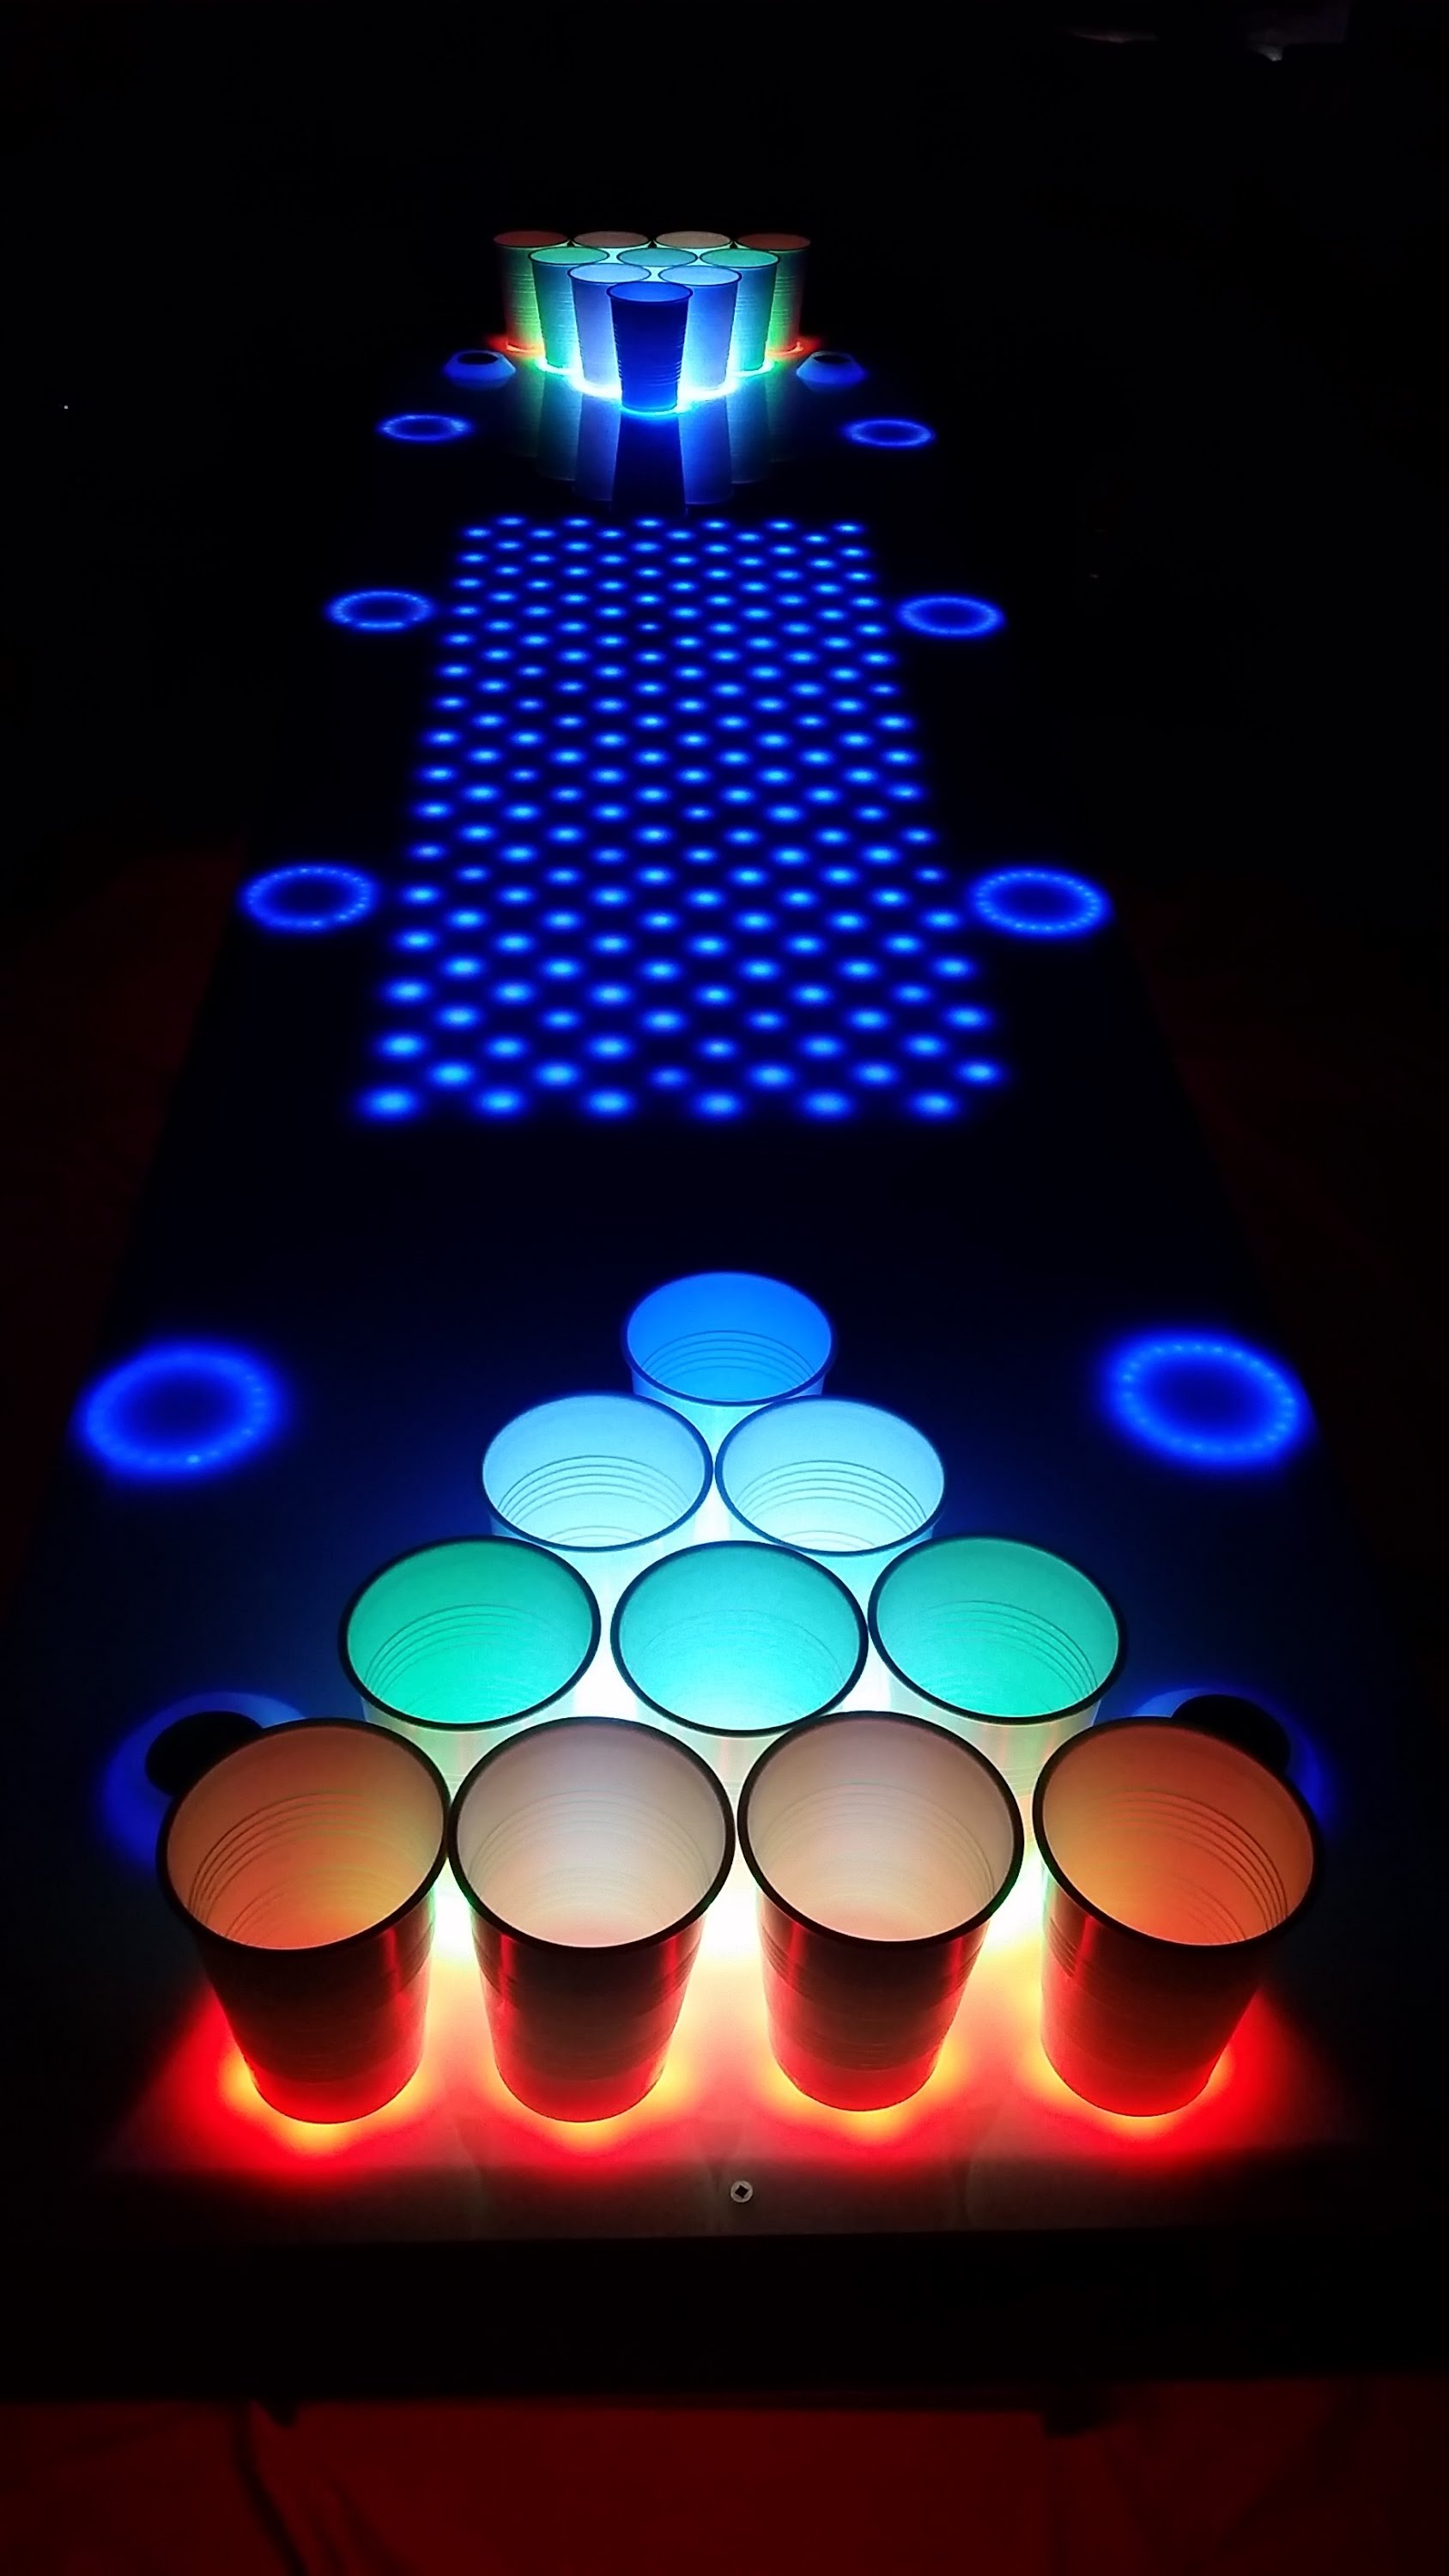 Wicked awesome led beer pong table 2 0 arttuesday - Interactive led beer pong table ...